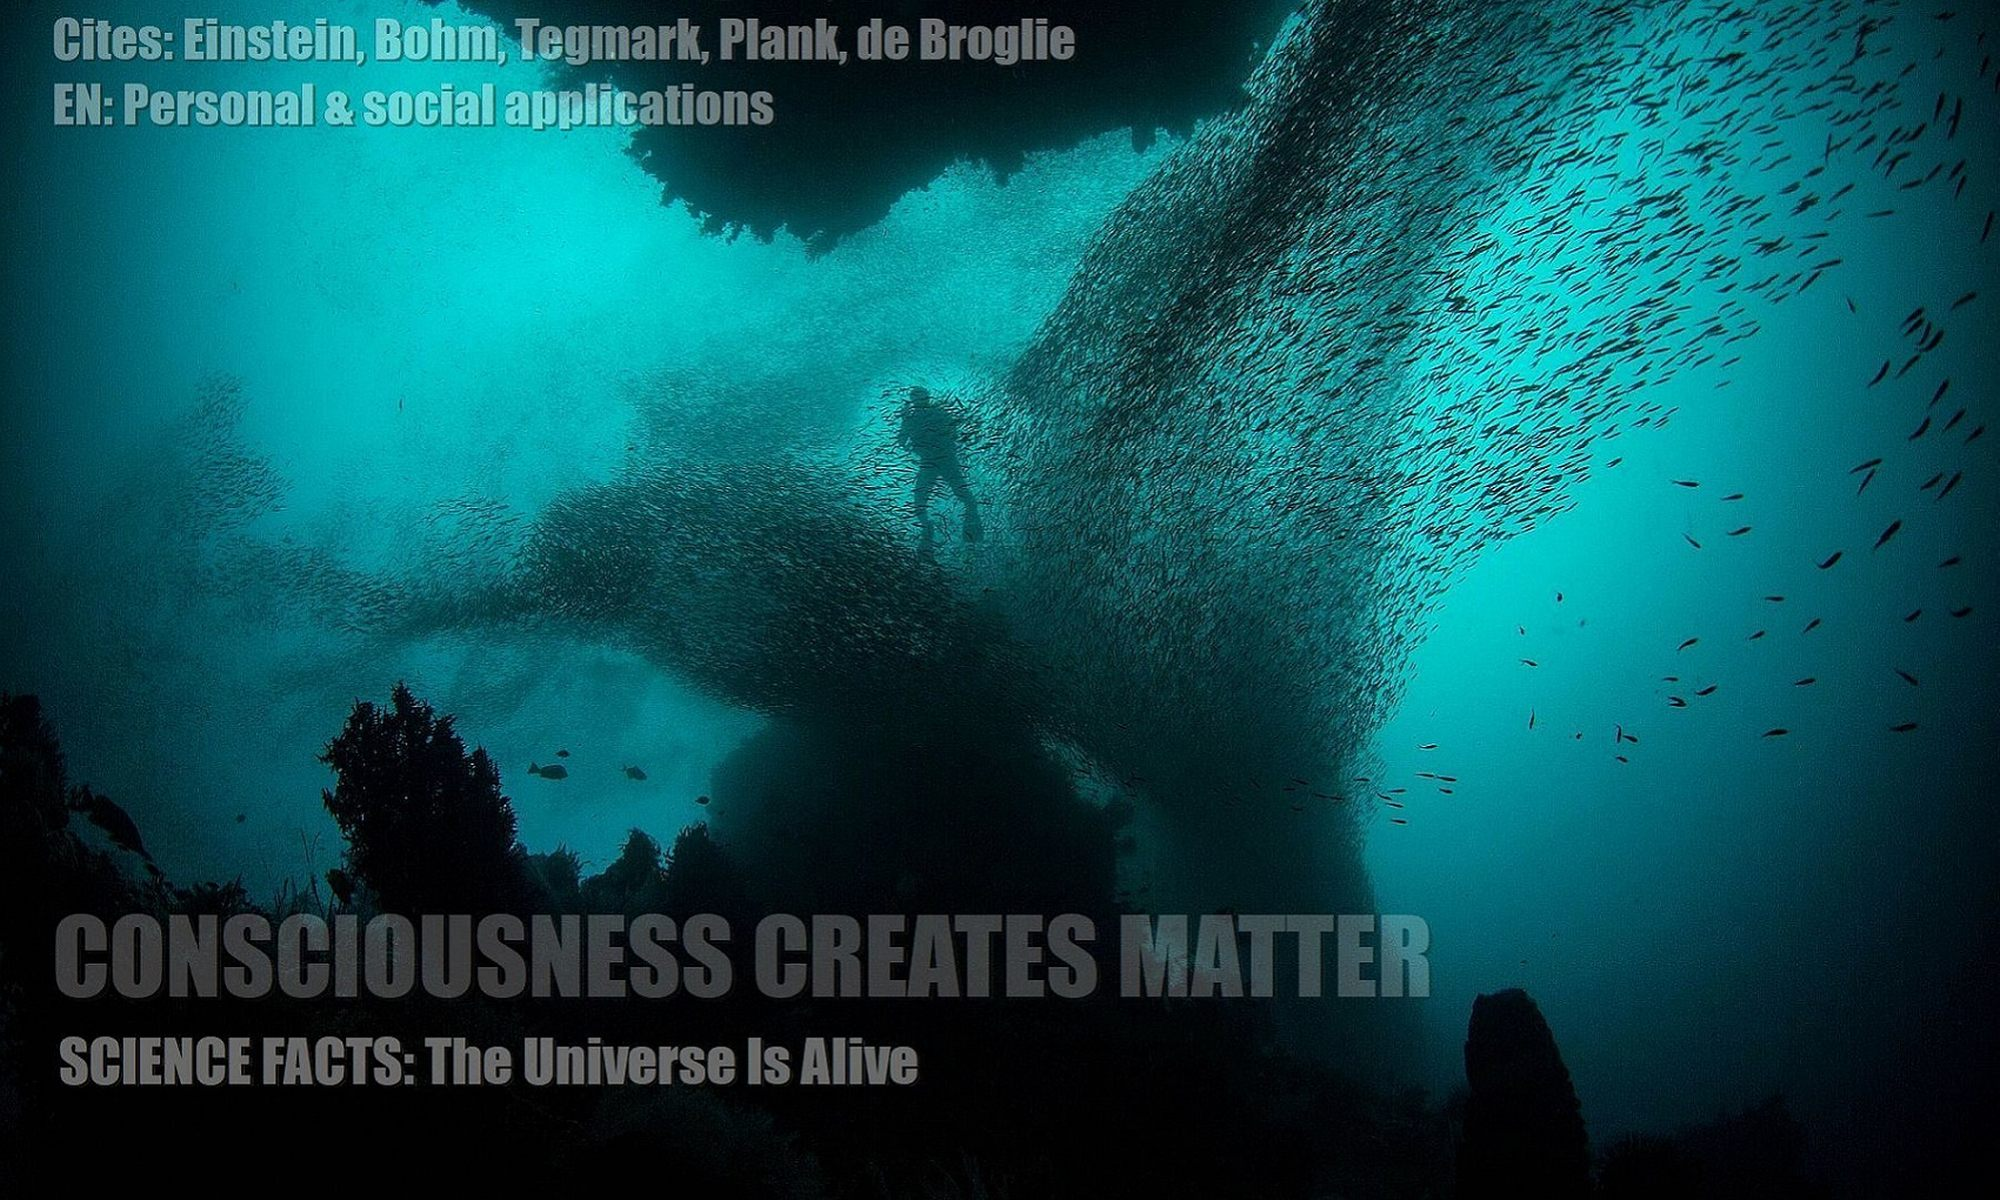 Do-thoughts-create-matter-does-consciousness-creates-matter-reality-scientific-facts-proof-evidence